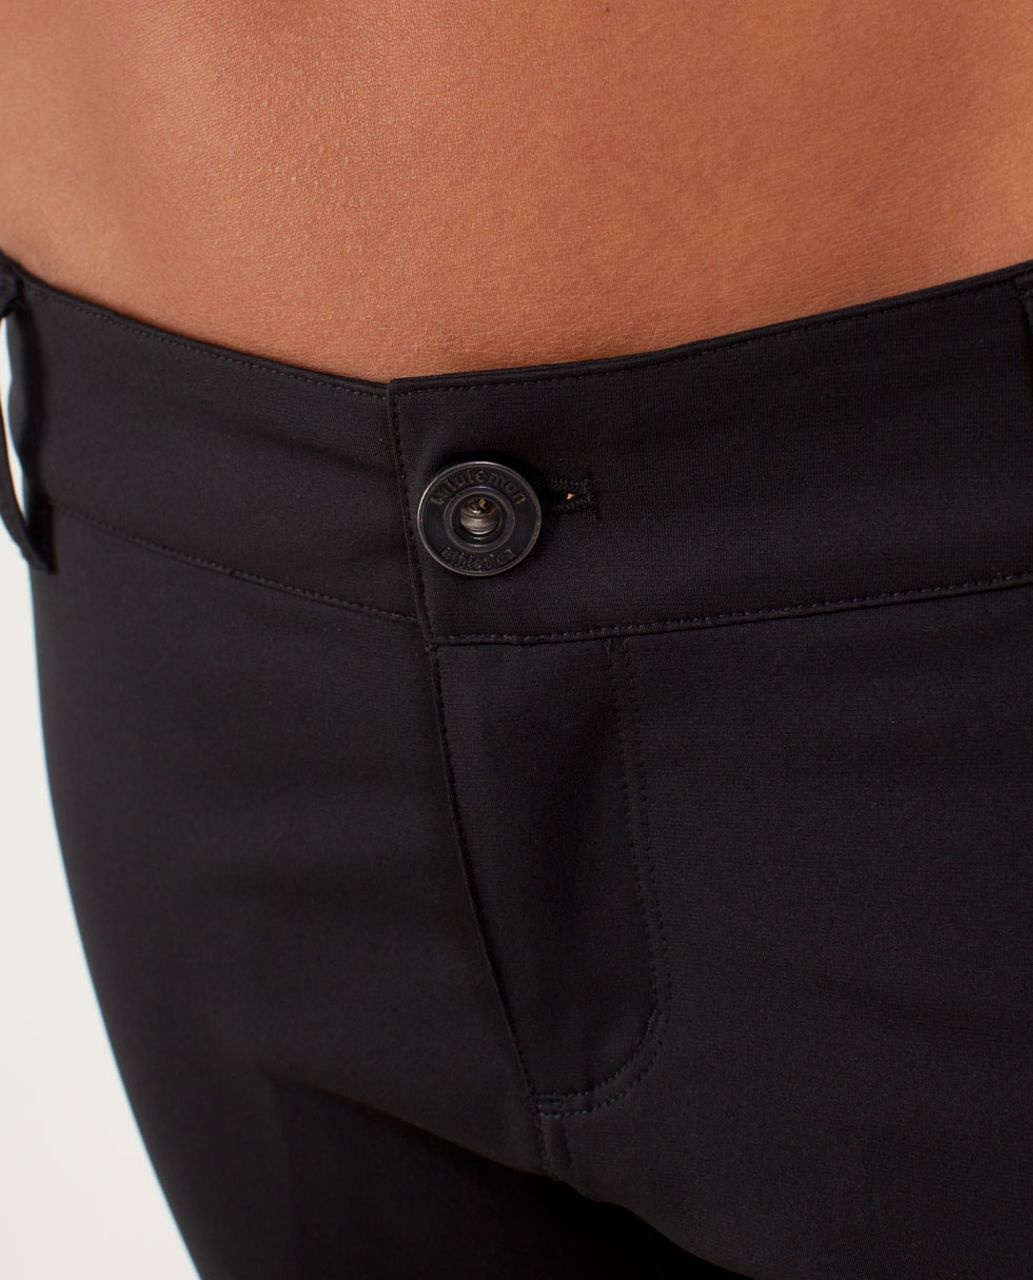 Lululemon Out & About Pant - Black